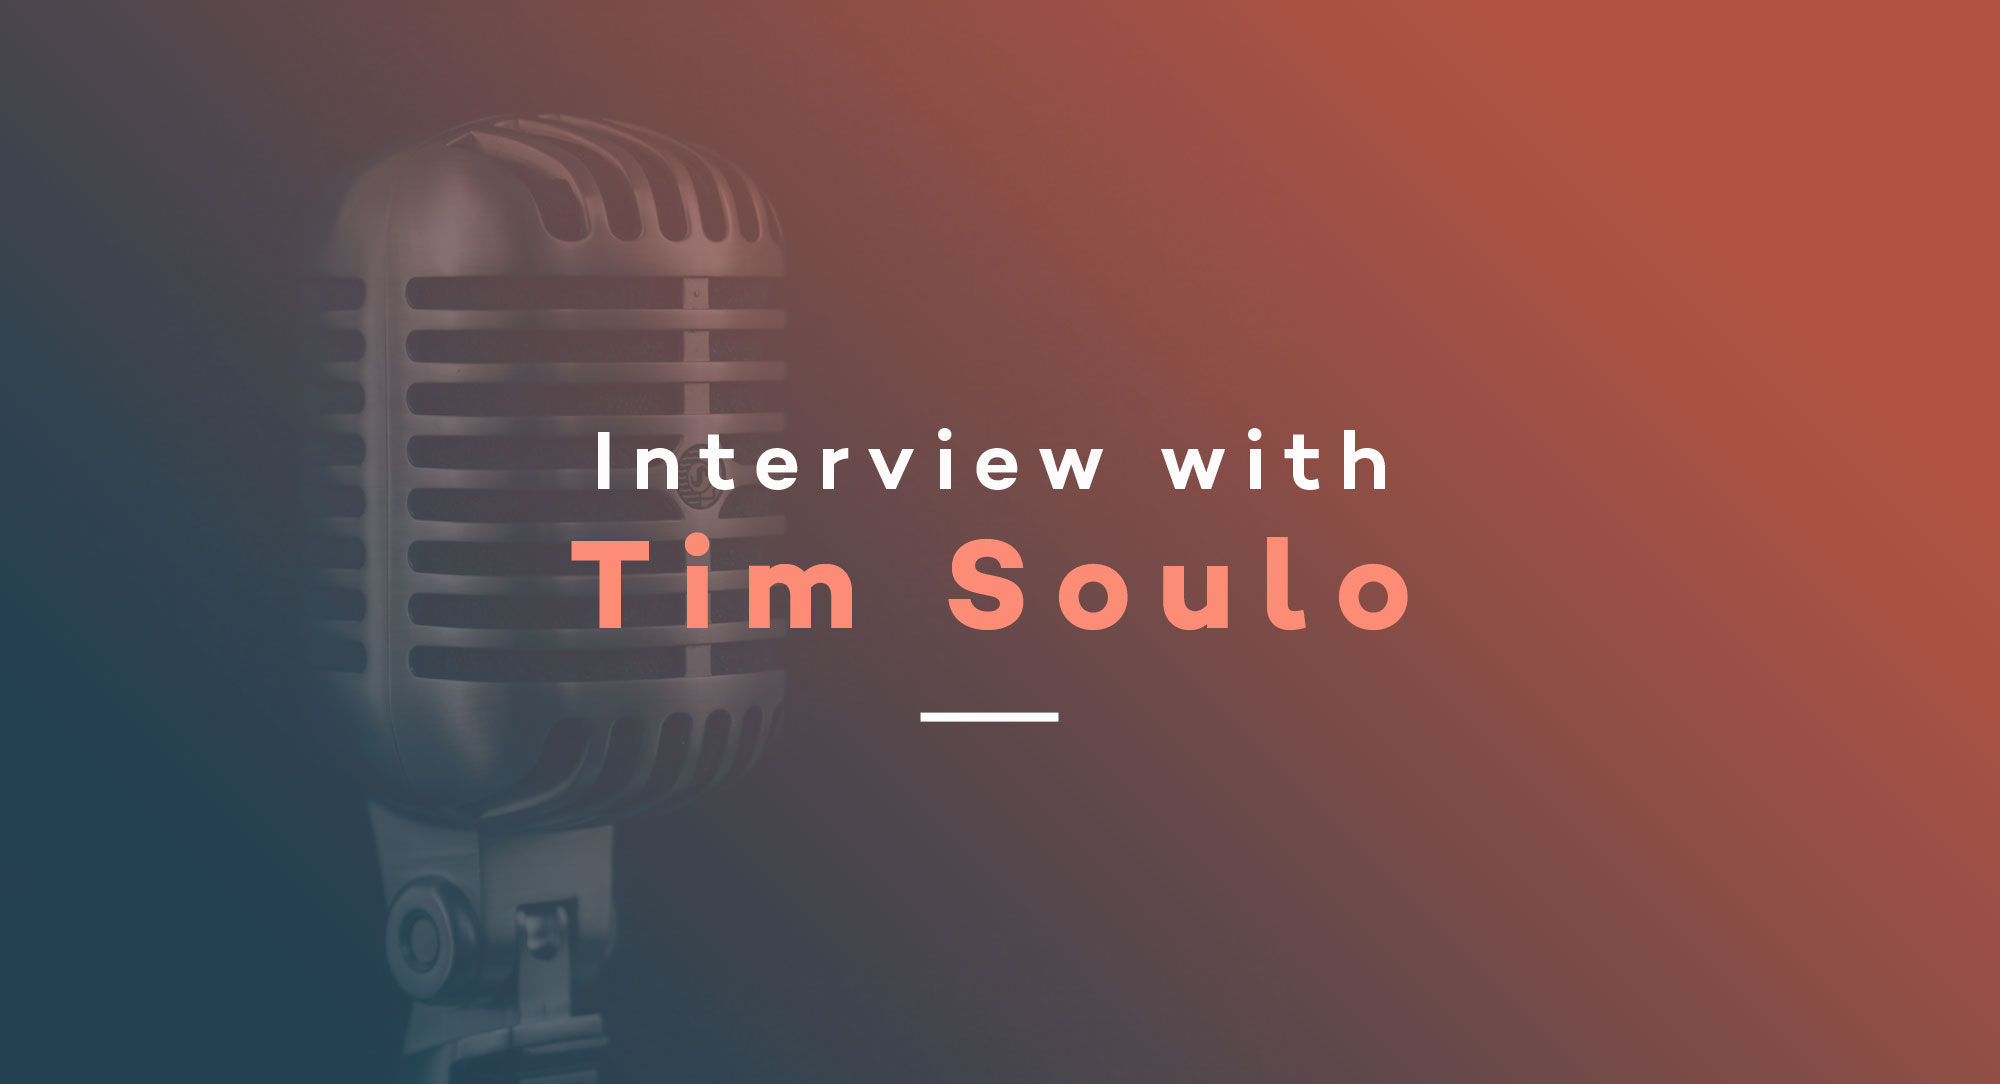 Interview with Tim Soulo